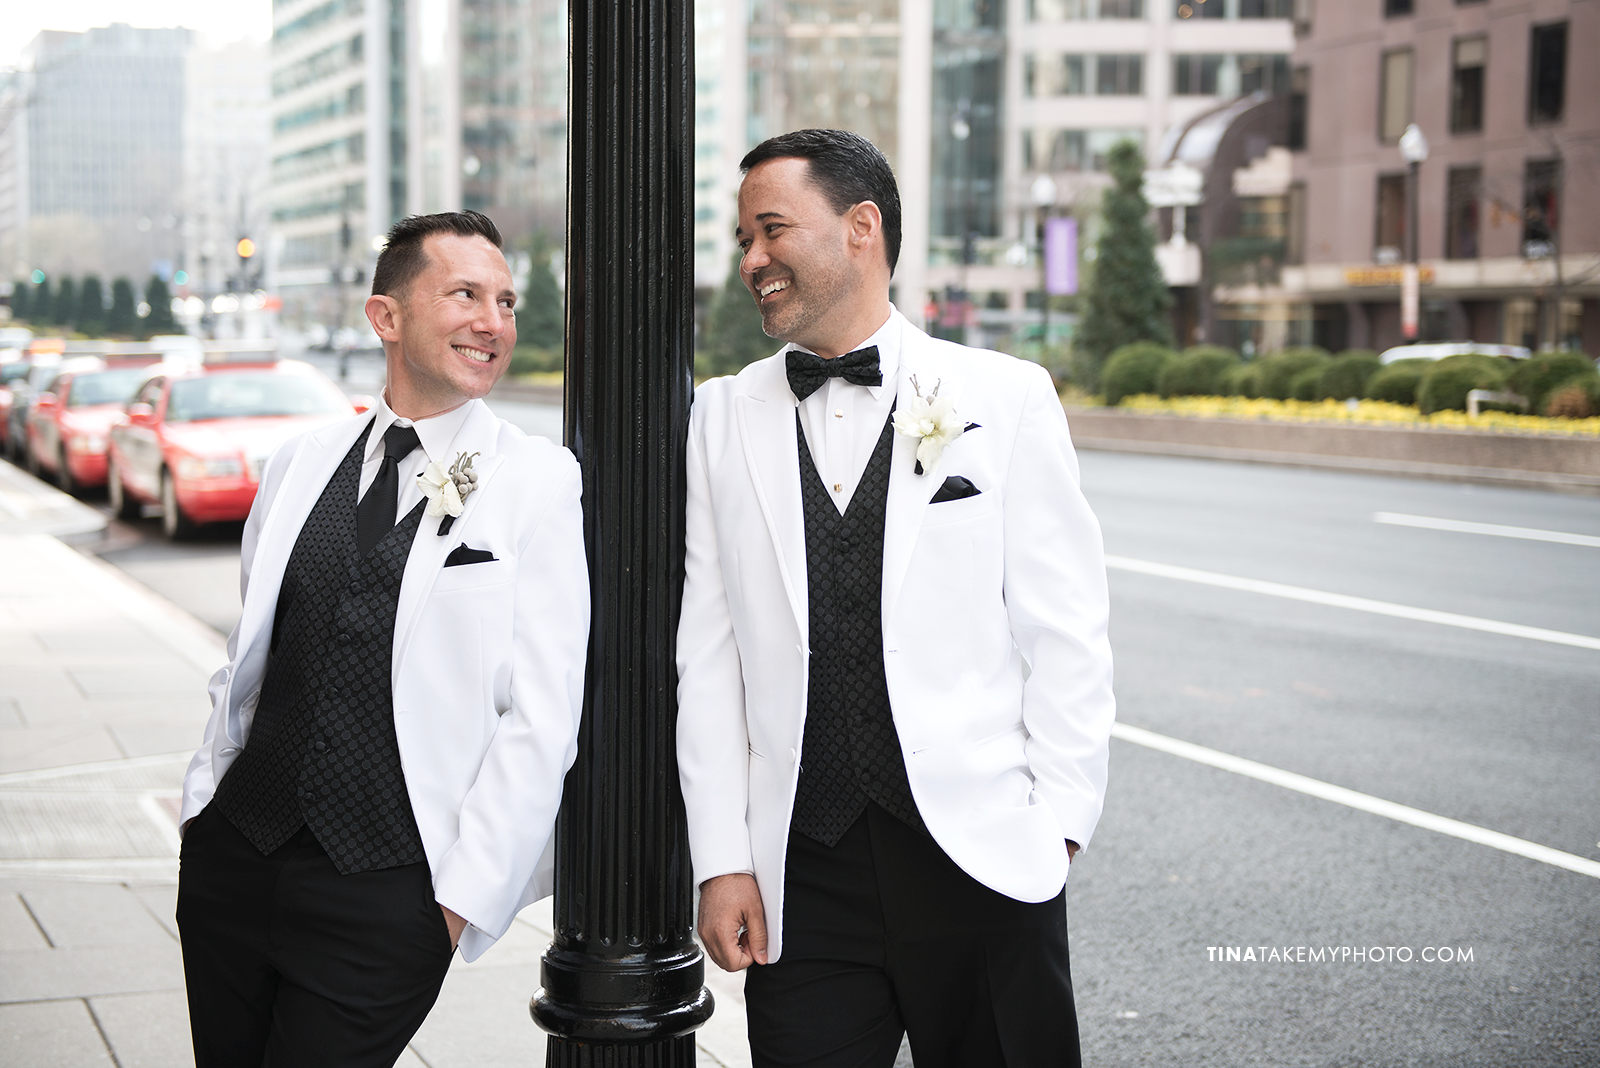 06-Washington-DC-Virginia-Gay-Same-Sex-Wedding-Men-12-13-14-Mayflower-City-Sidewalk-Photographer-Tuxedos